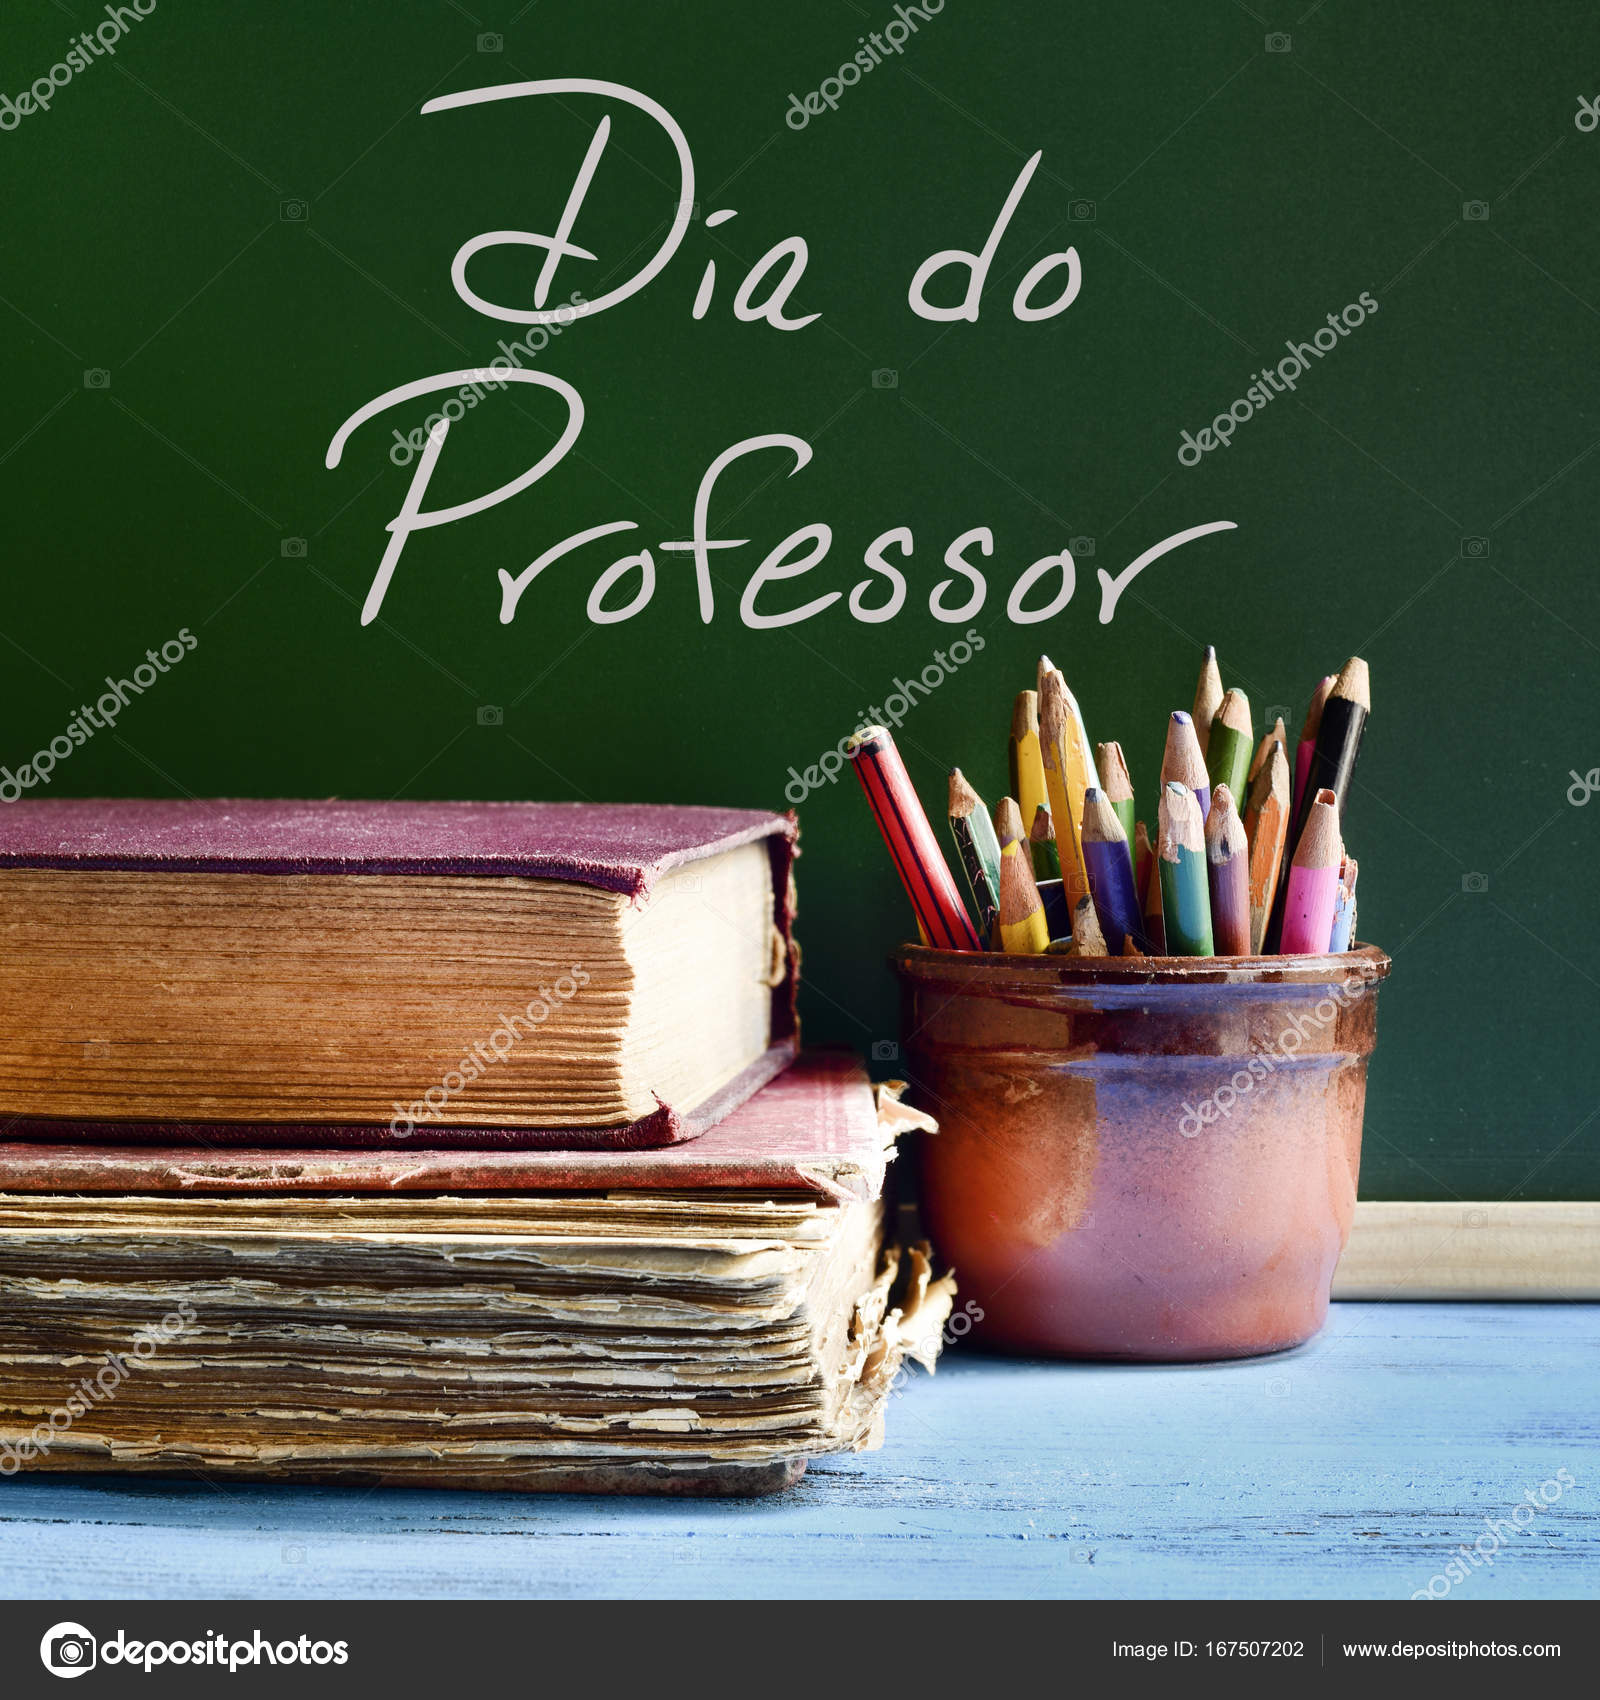 Dia Do Professor Fotografias Dia Do Professor Imagens Royalty Free Depositphotos